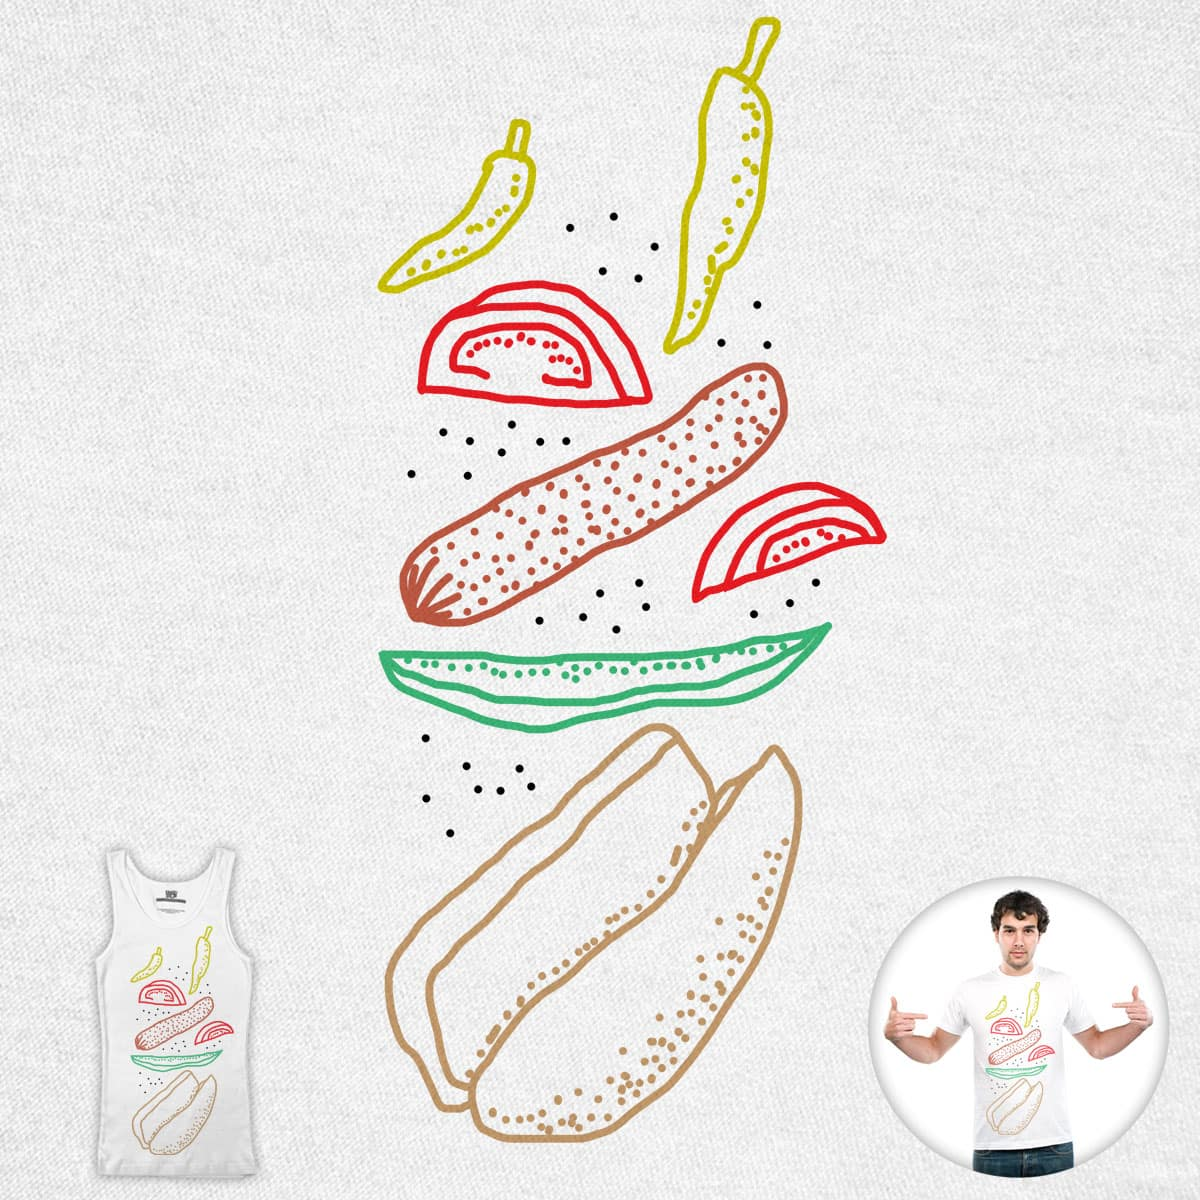 Just Add Sauce (Hot Dog Edition) by SteveOramA on Threadless